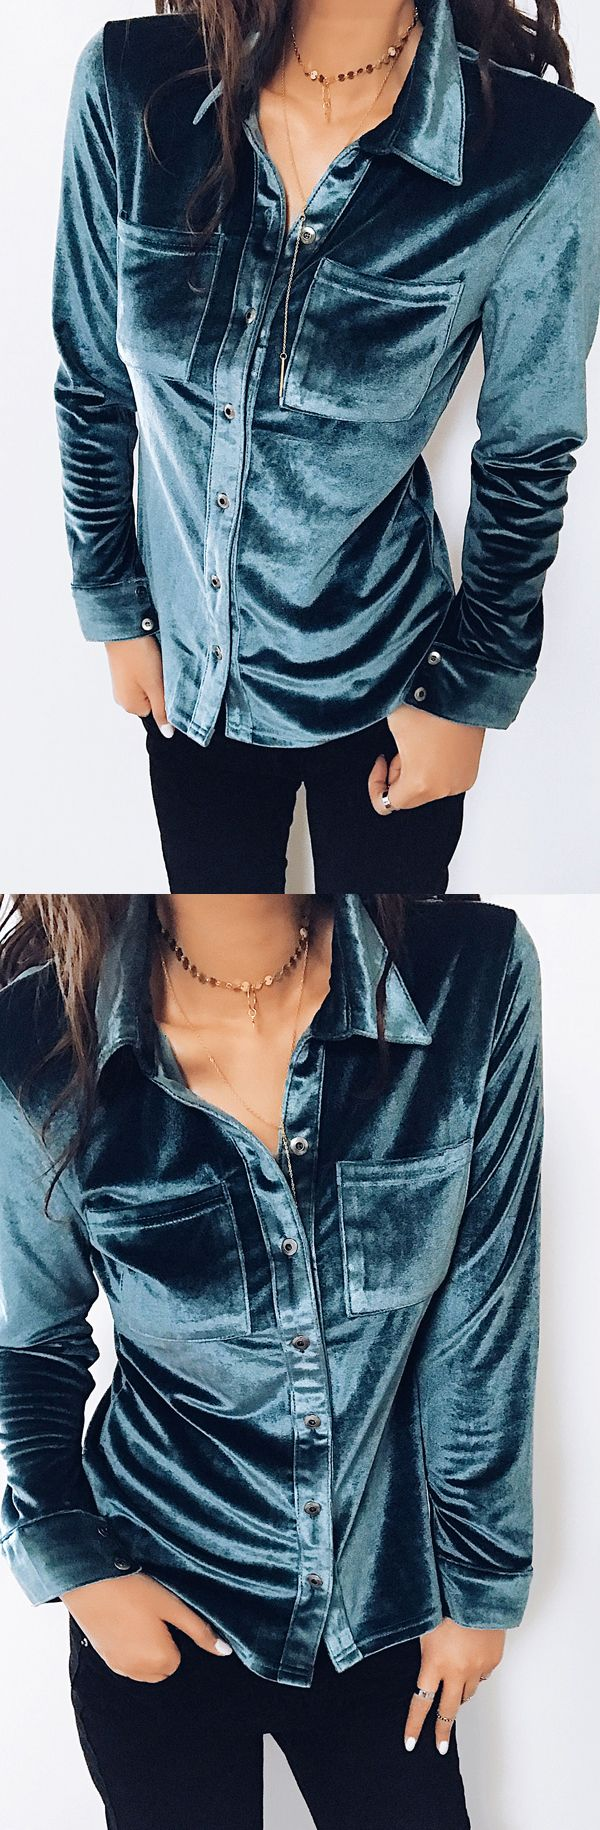 $34.99 Chicnico Boho Chest Pocket Blue Long Sleeve Blouse all fashion trend shop online store travel causal outifit